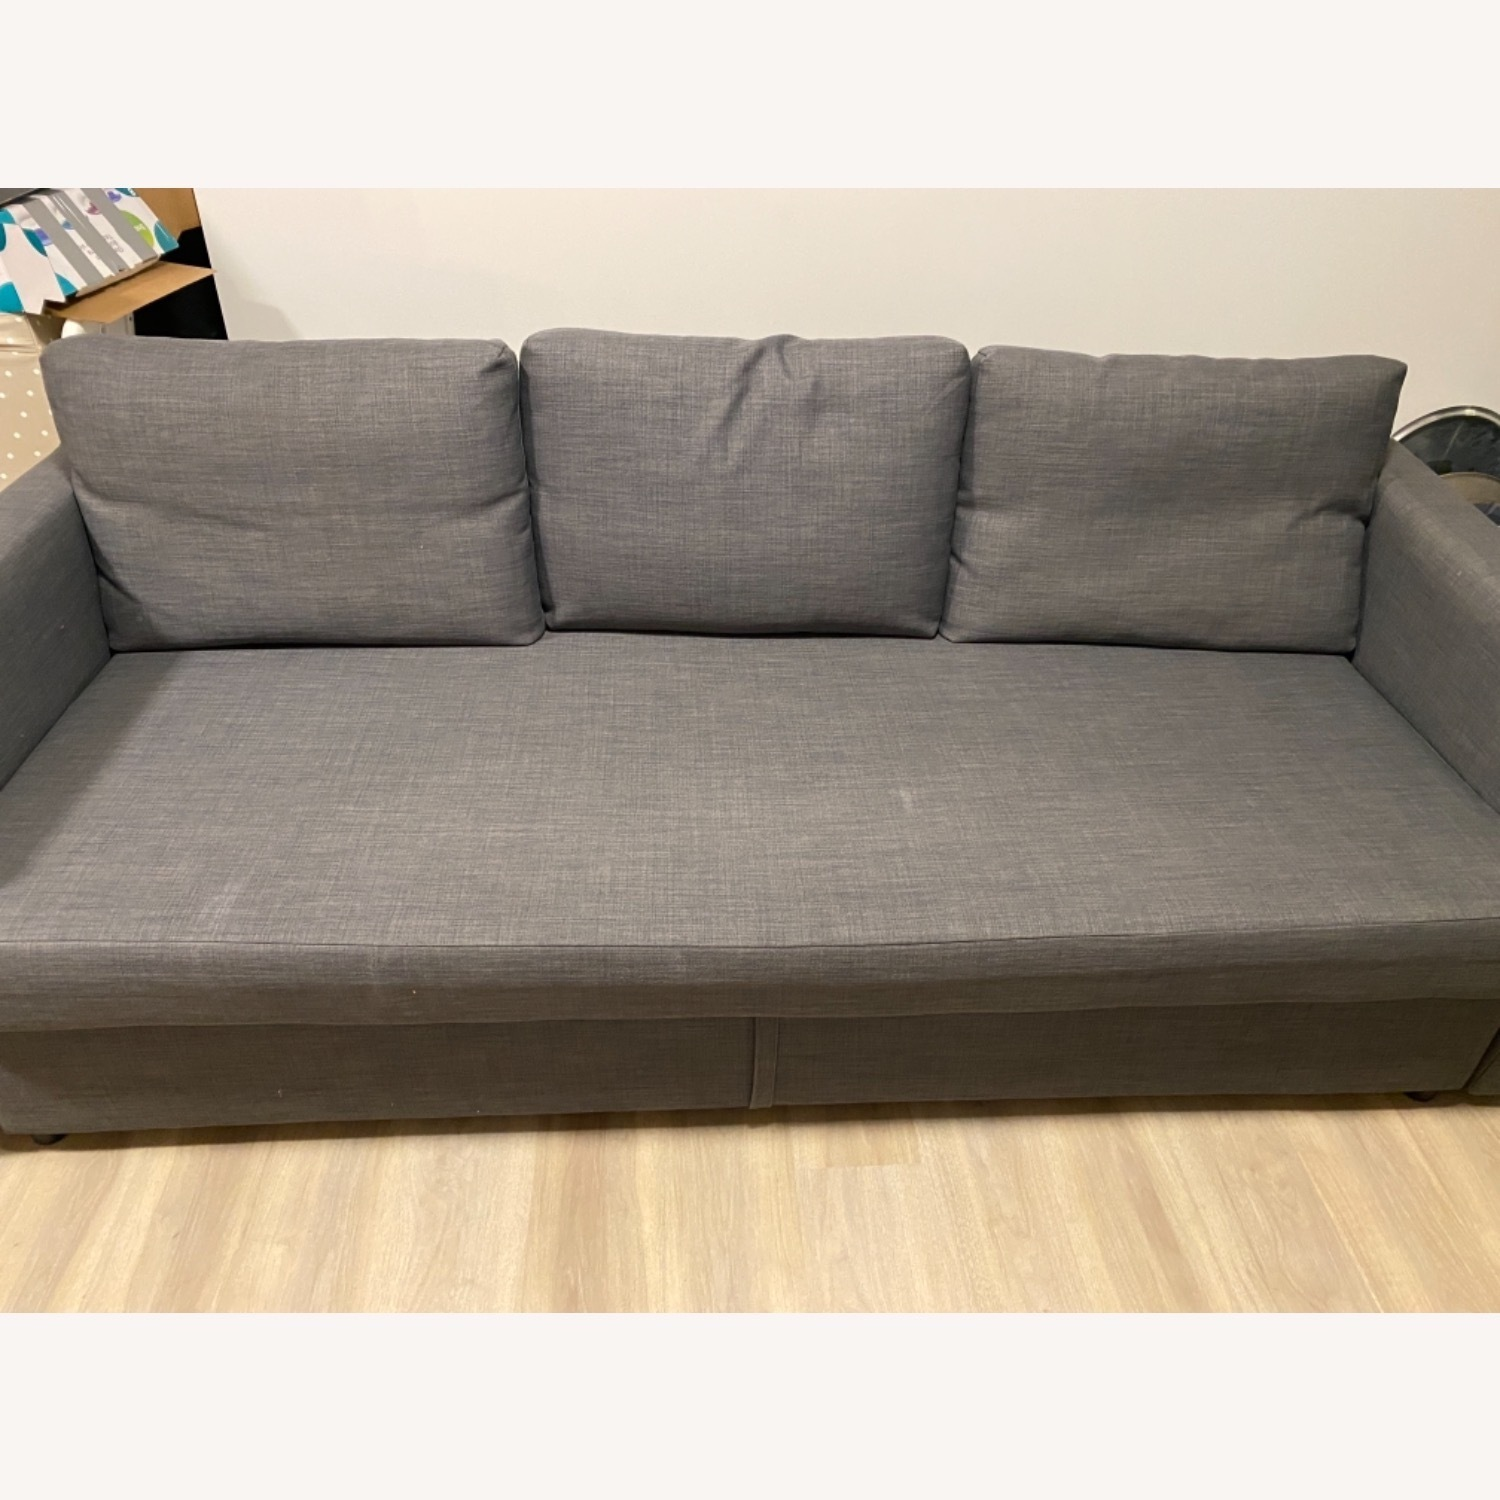 IKEA Dark Grey Sofa Bed - image-2